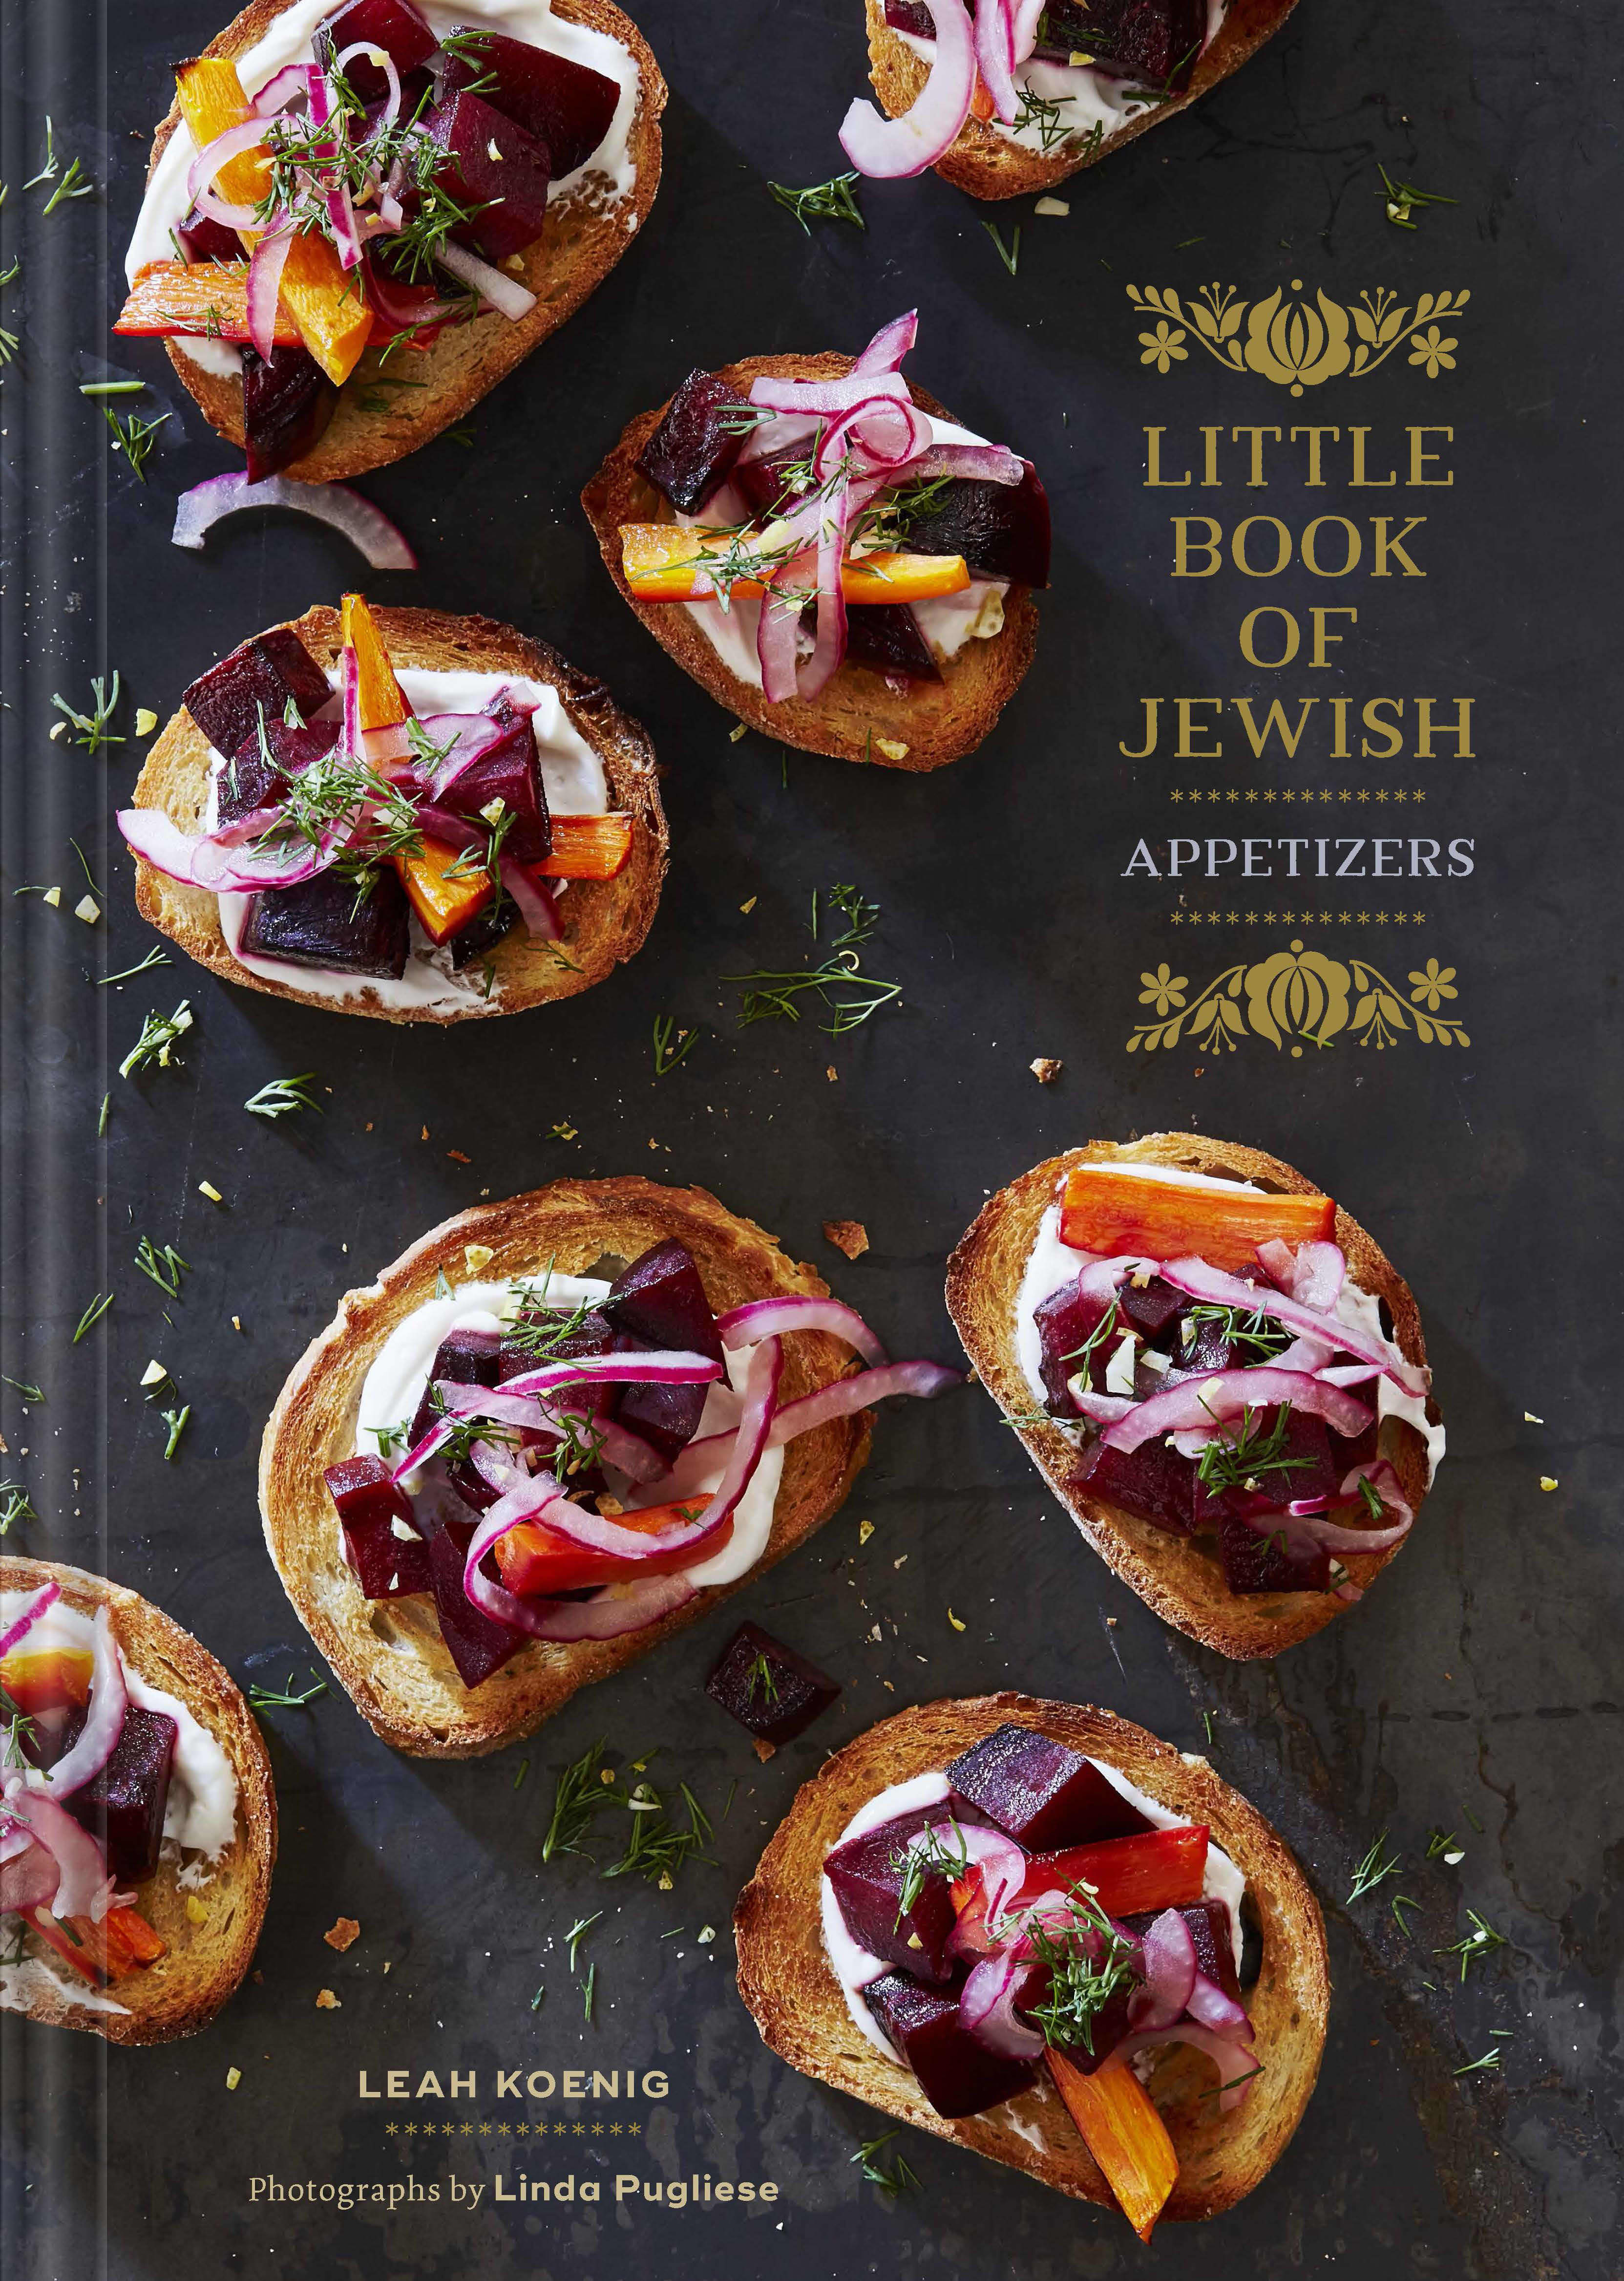 From Little Book of Jewish Appetizers by Leah Koenig, photographs by Linda Pugliese (Chronicle Books, 2017.